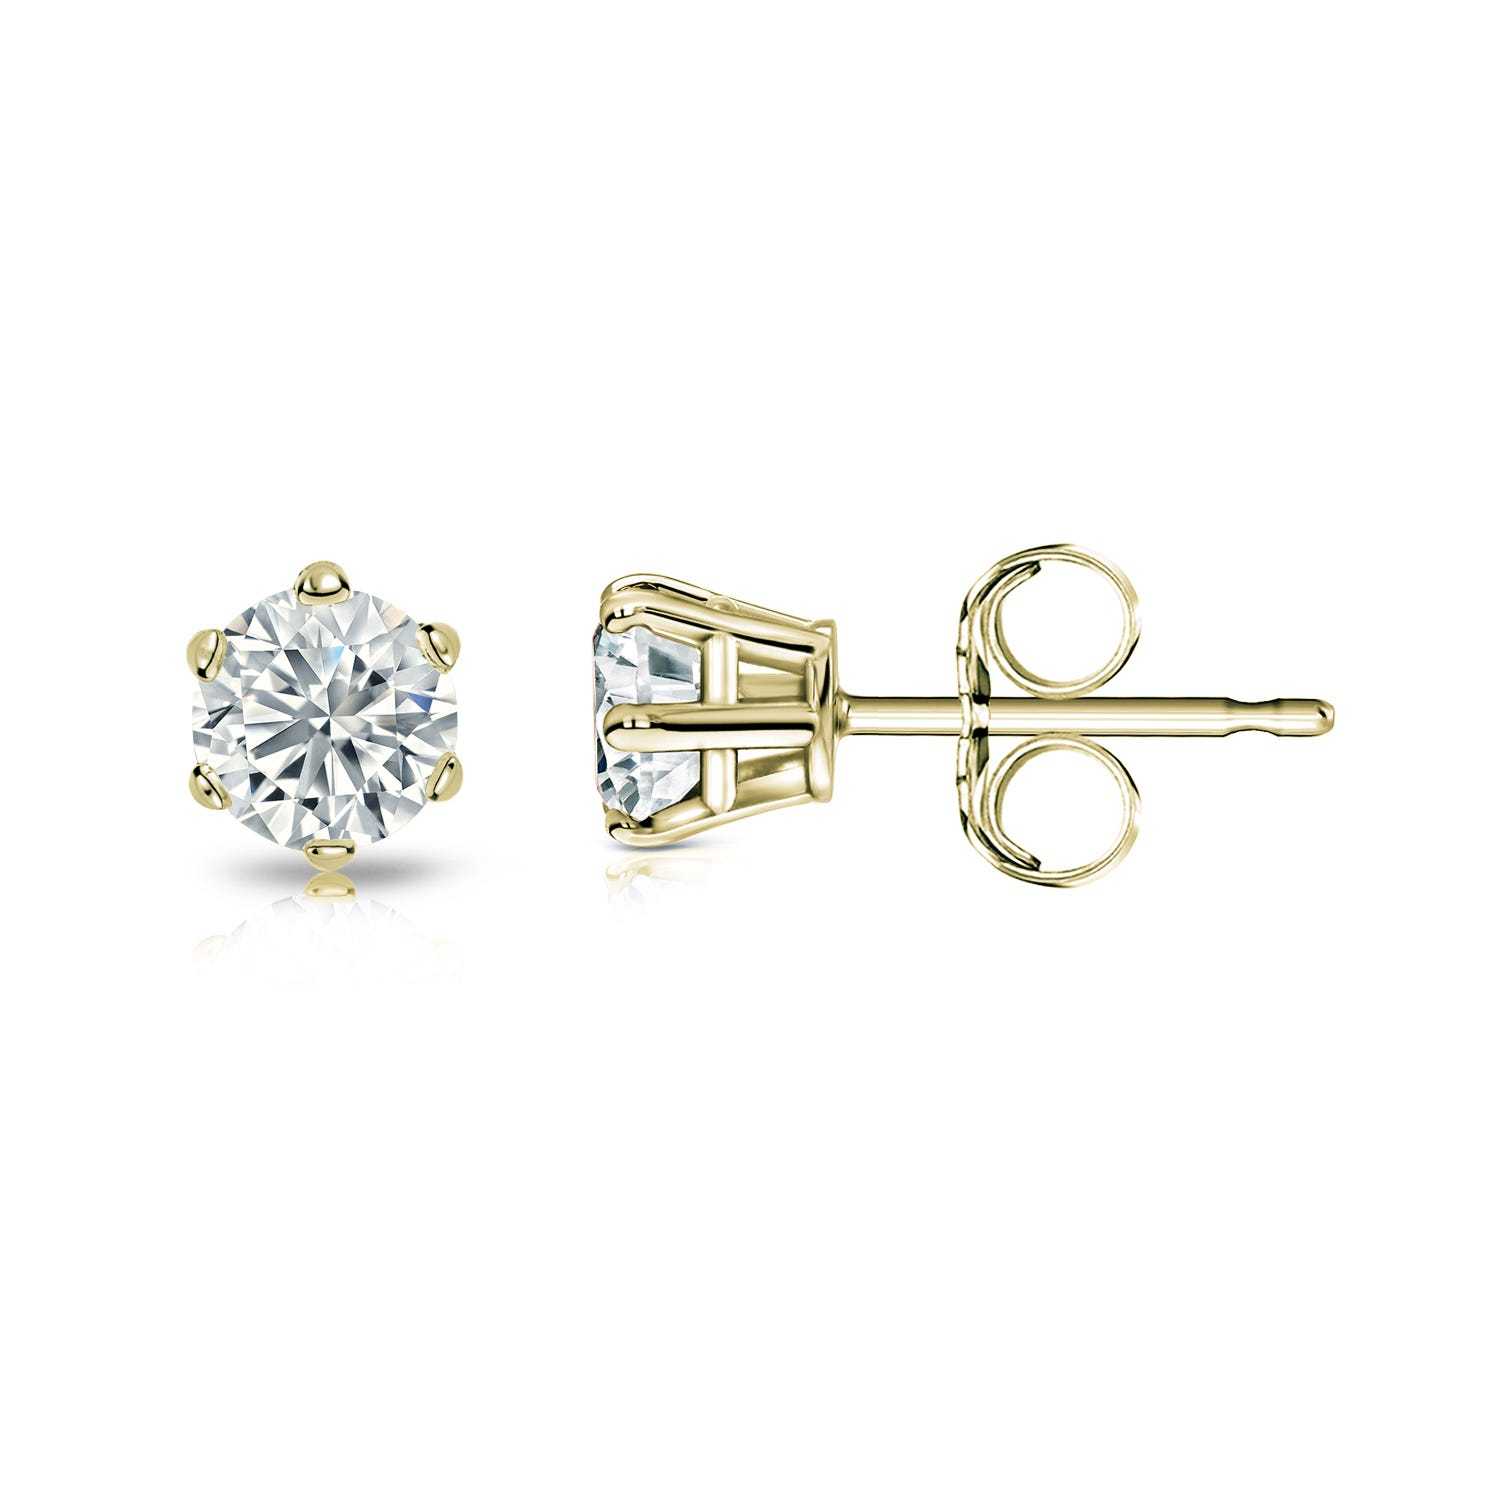 Round Diamond 1/4ctw. (IJ-I2) Solitaire Stud 6-Prong Earrings in 14K Yellow Gold